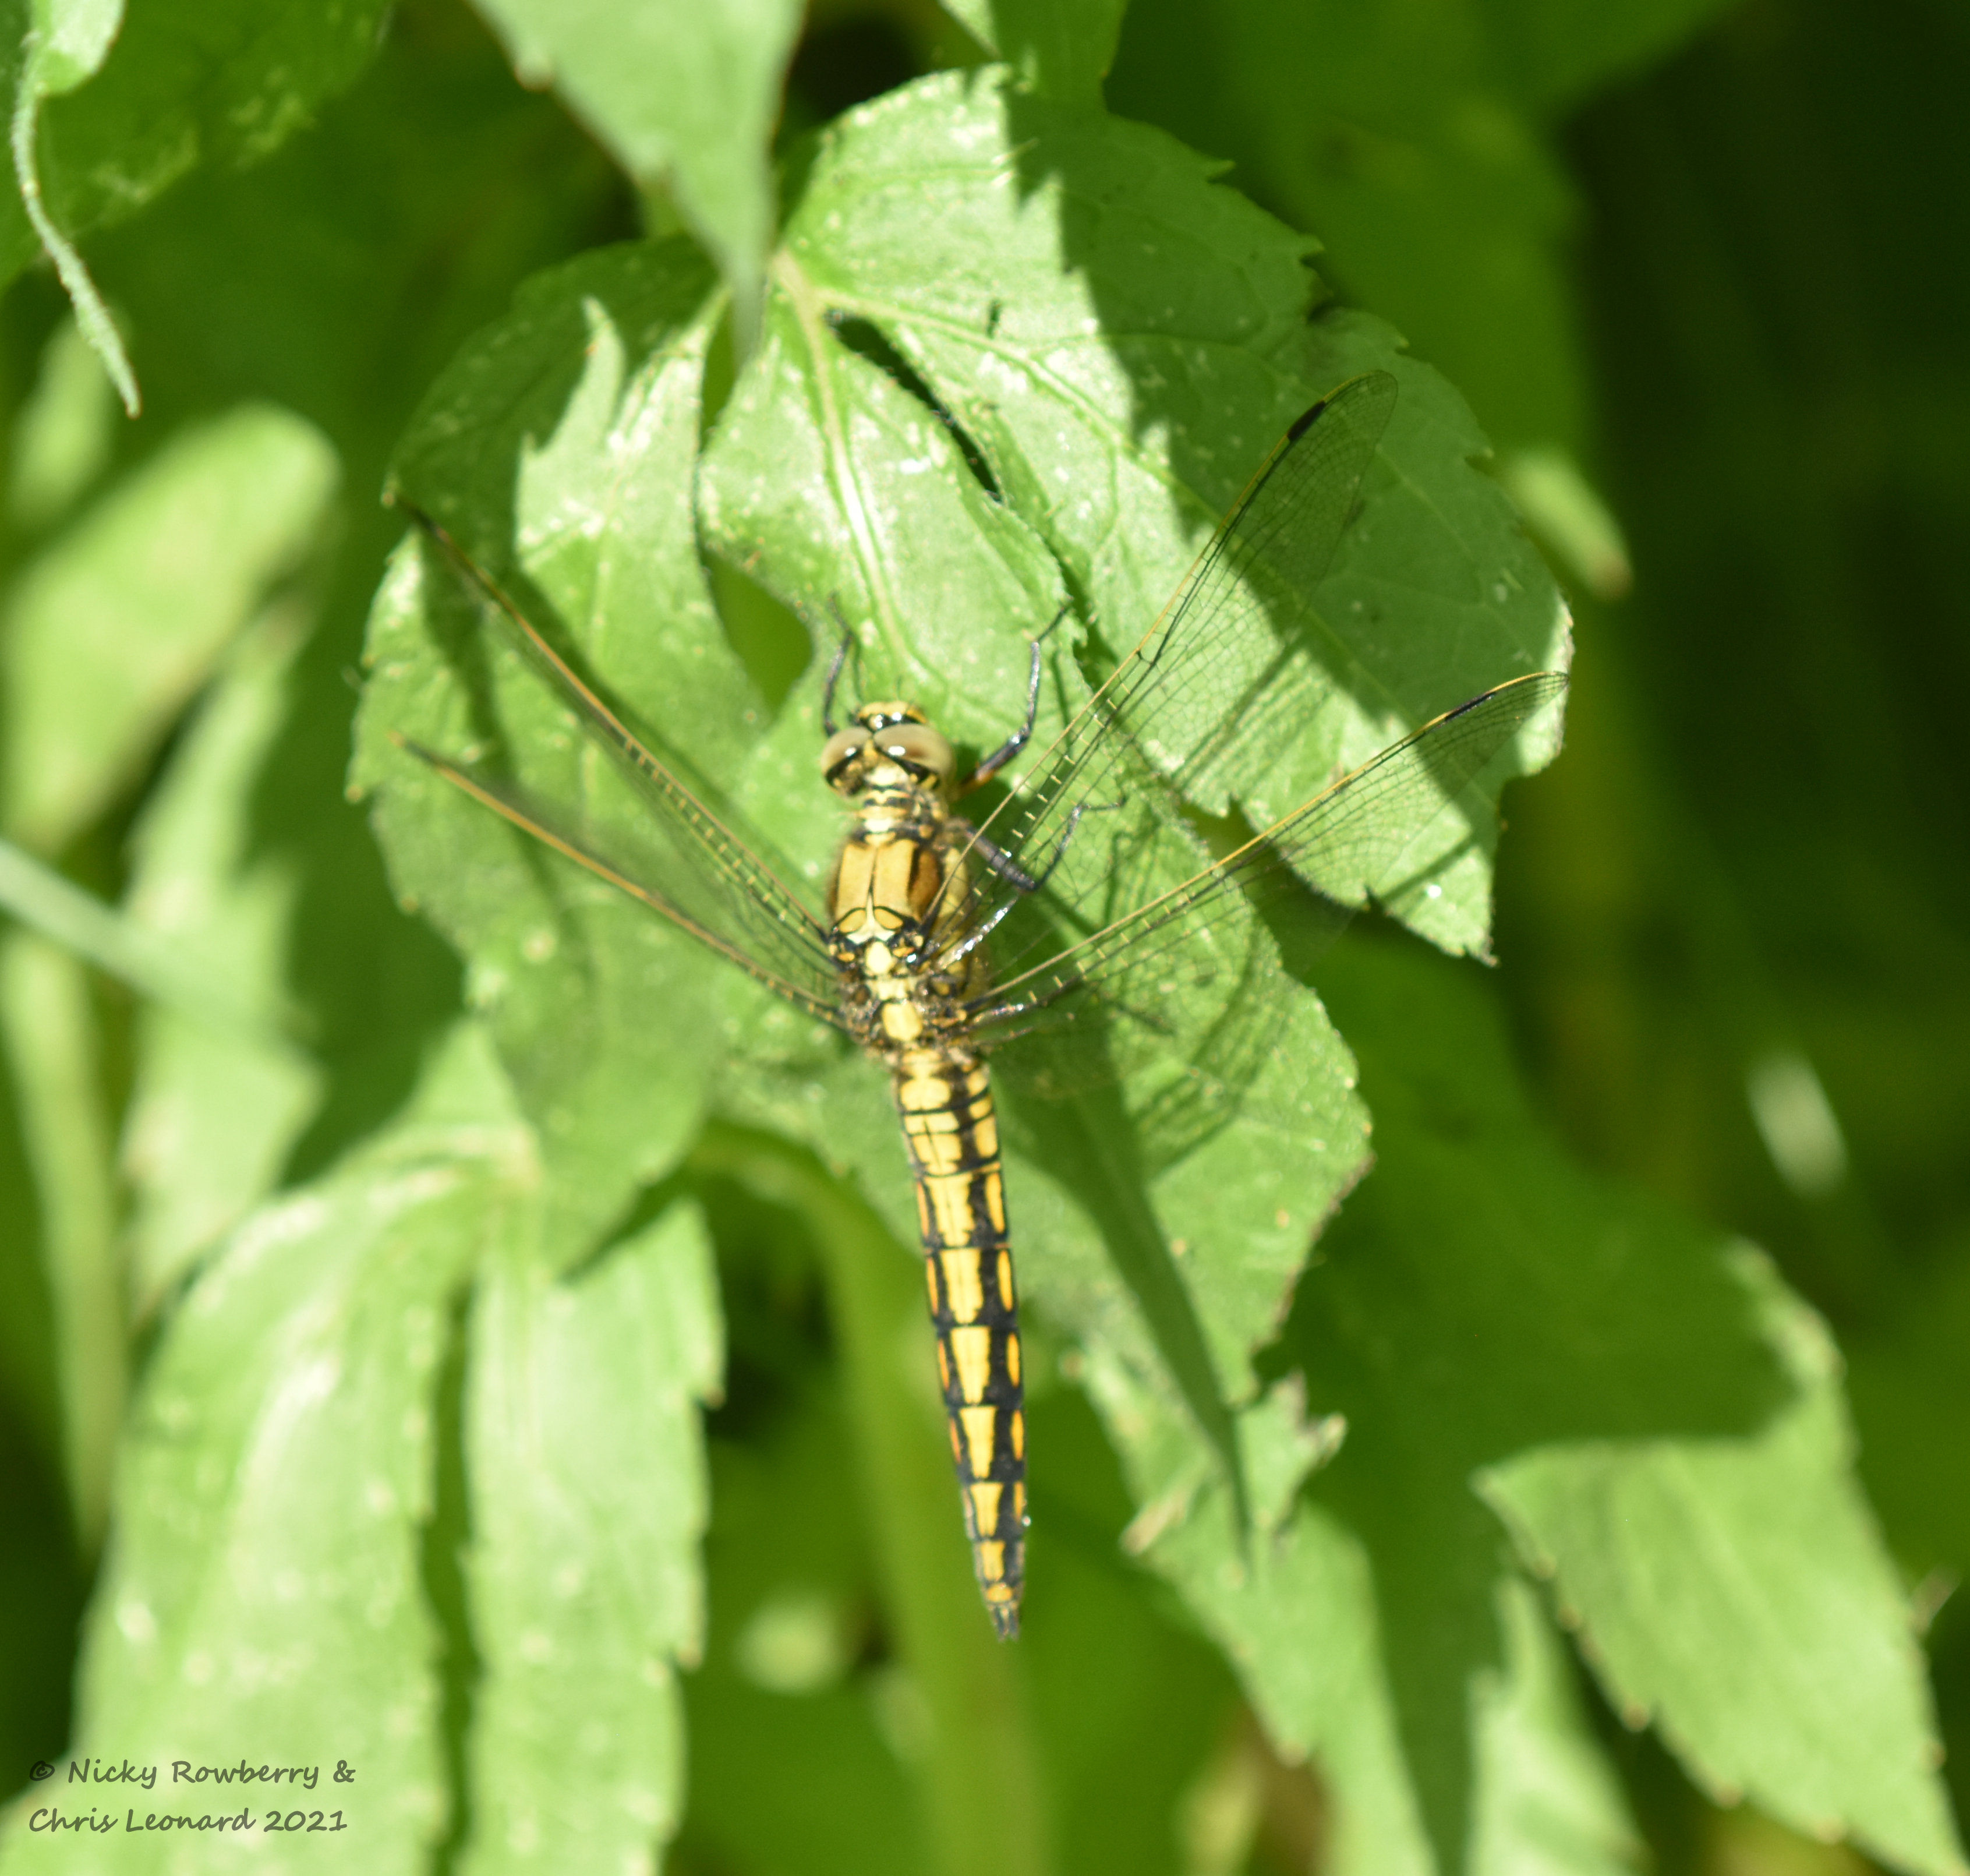 Black tailed skimmer immature male drakes